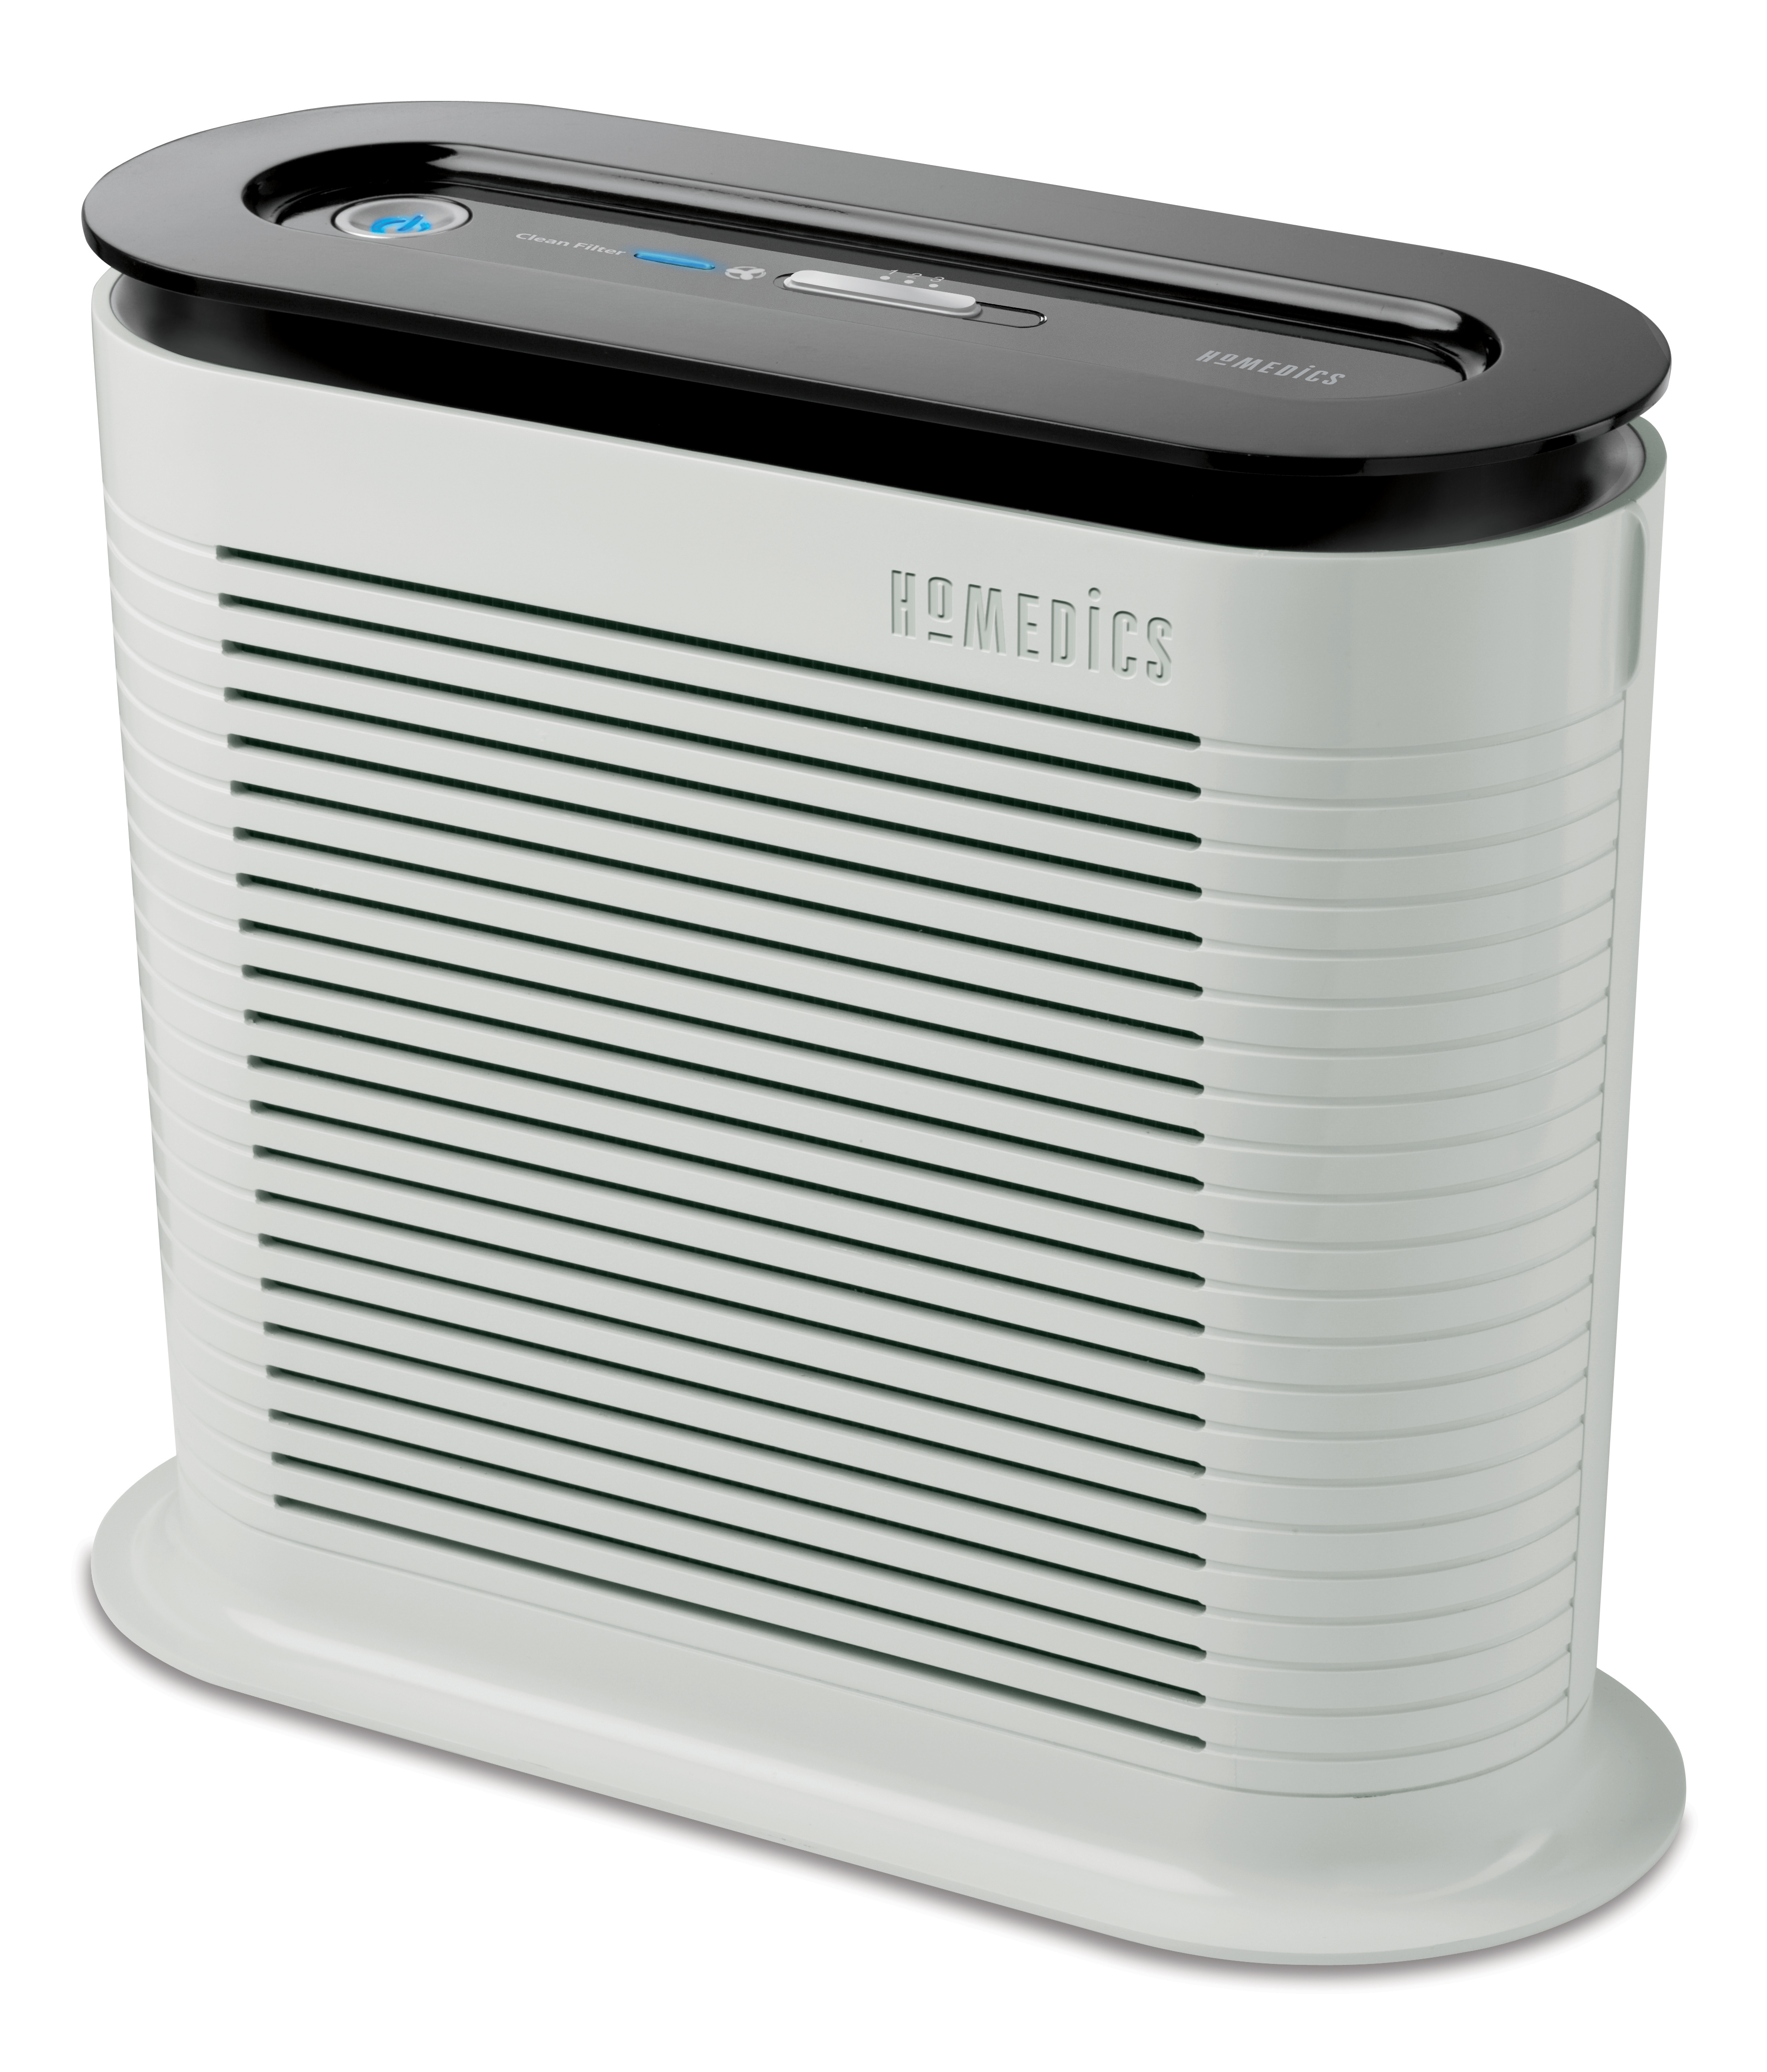 Air Cleaners Purifiers ~ Homedics professional hepa air purifier cleaner removes